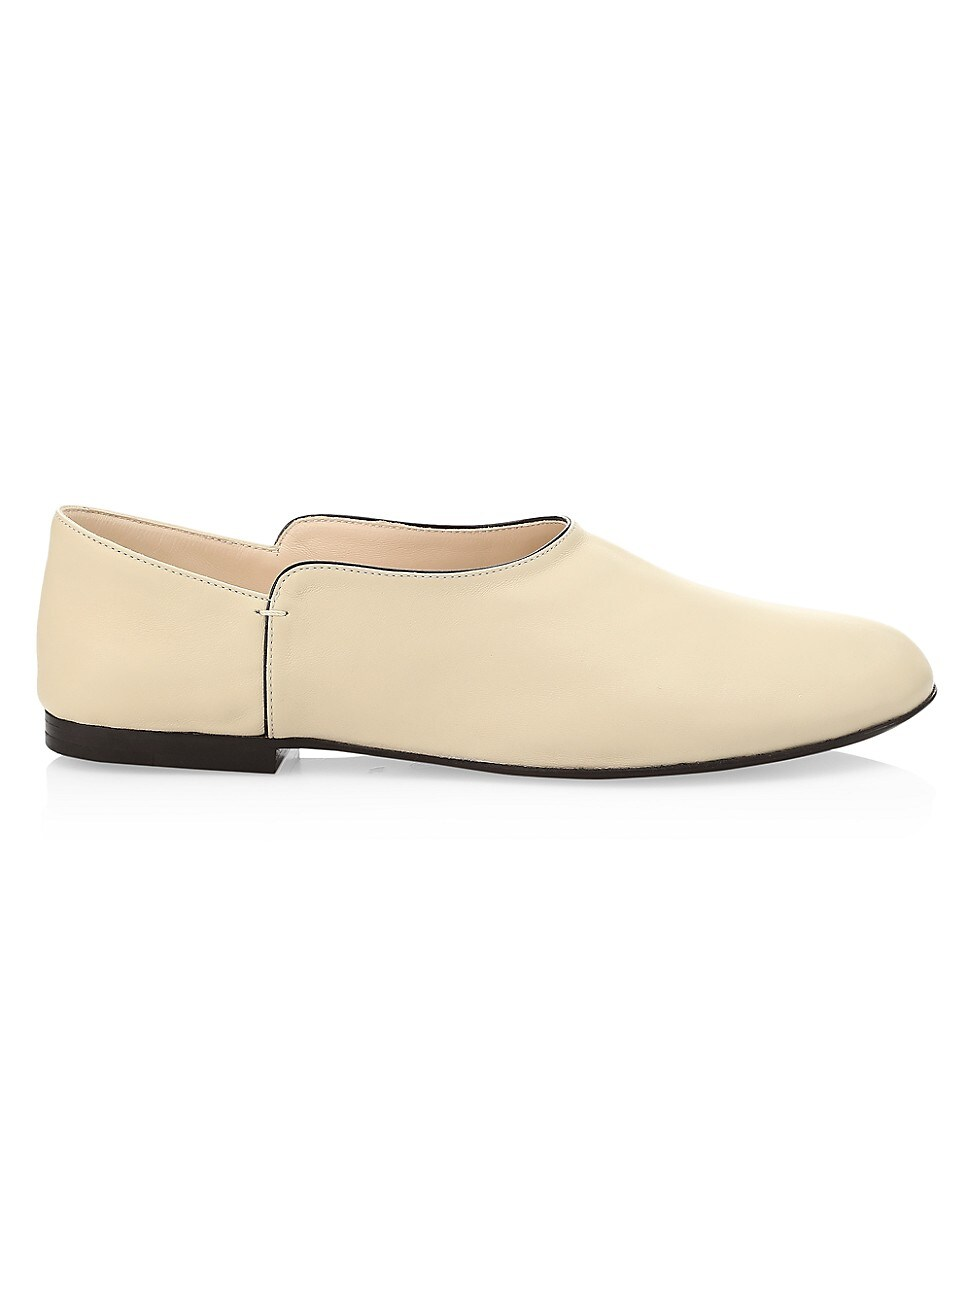 The Row WOMEN'S BOHEME LEATHER SLIPPERS